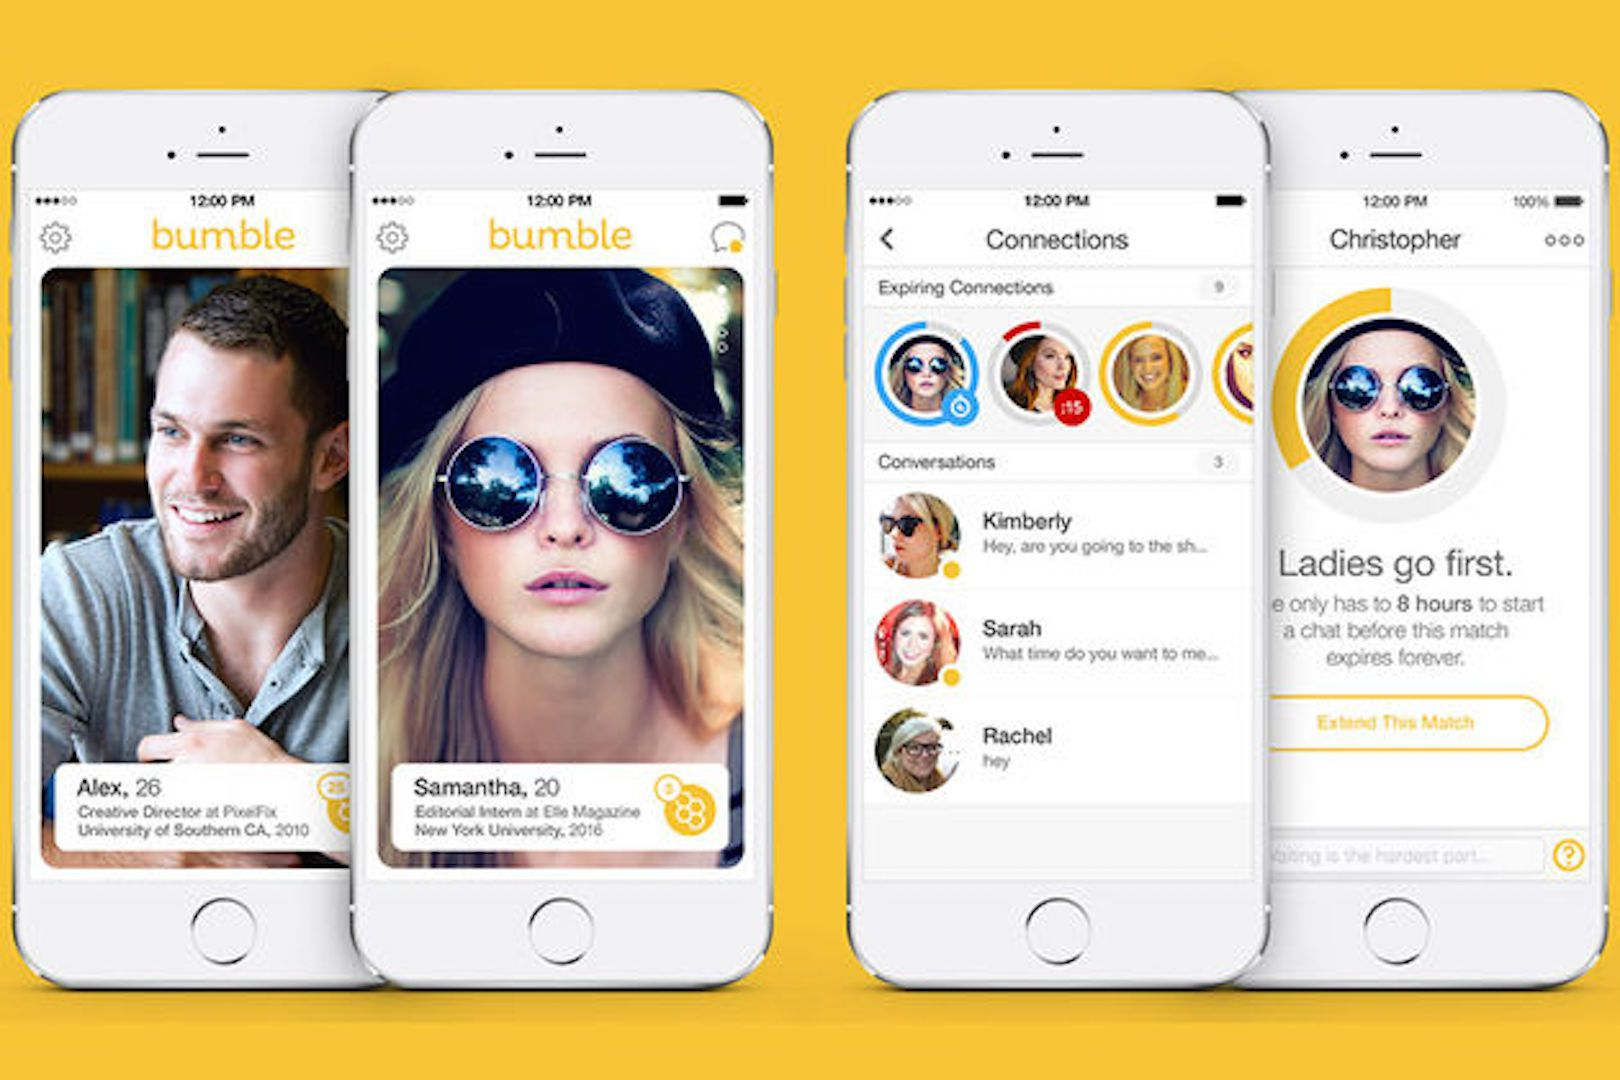 6 Things To Do On Bumble Bumble dating app, Bumble app